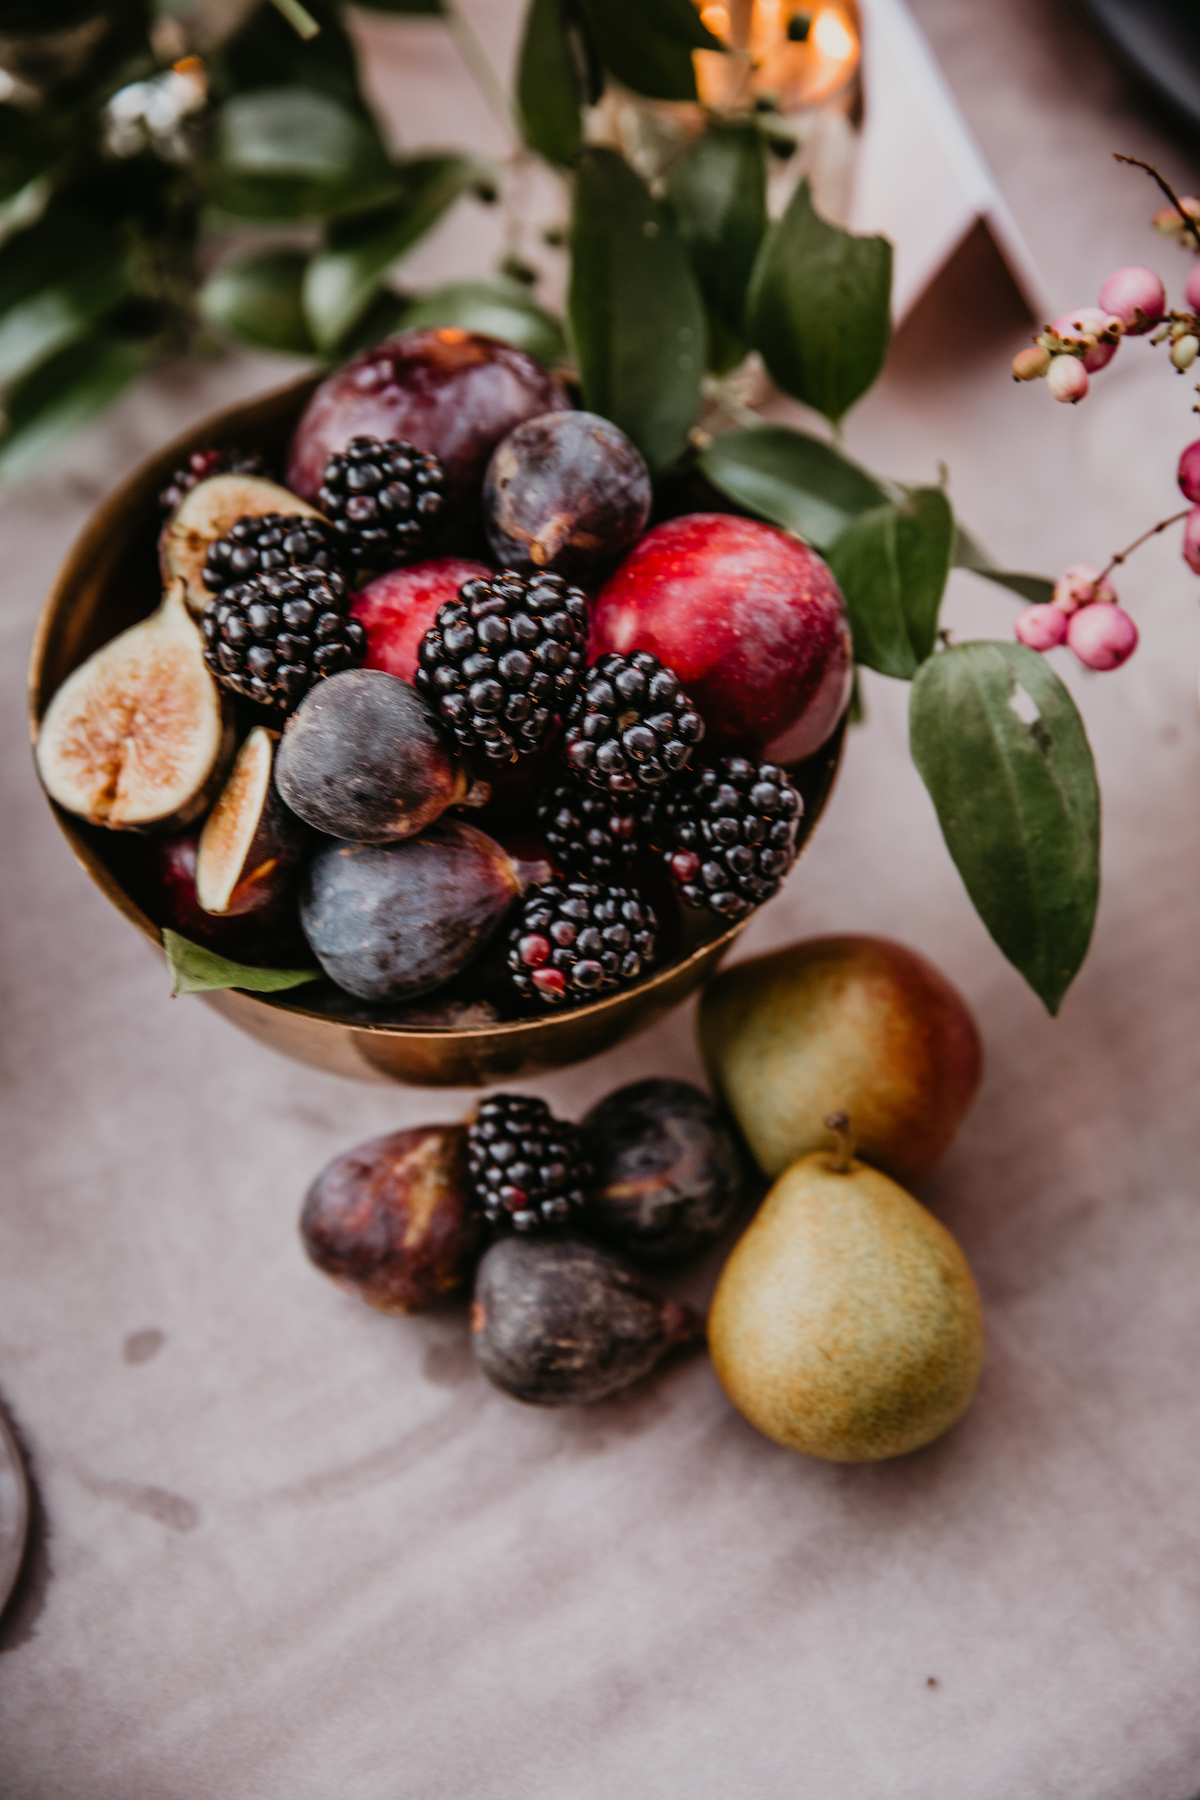 Artistic photo of brass bowl of fruit